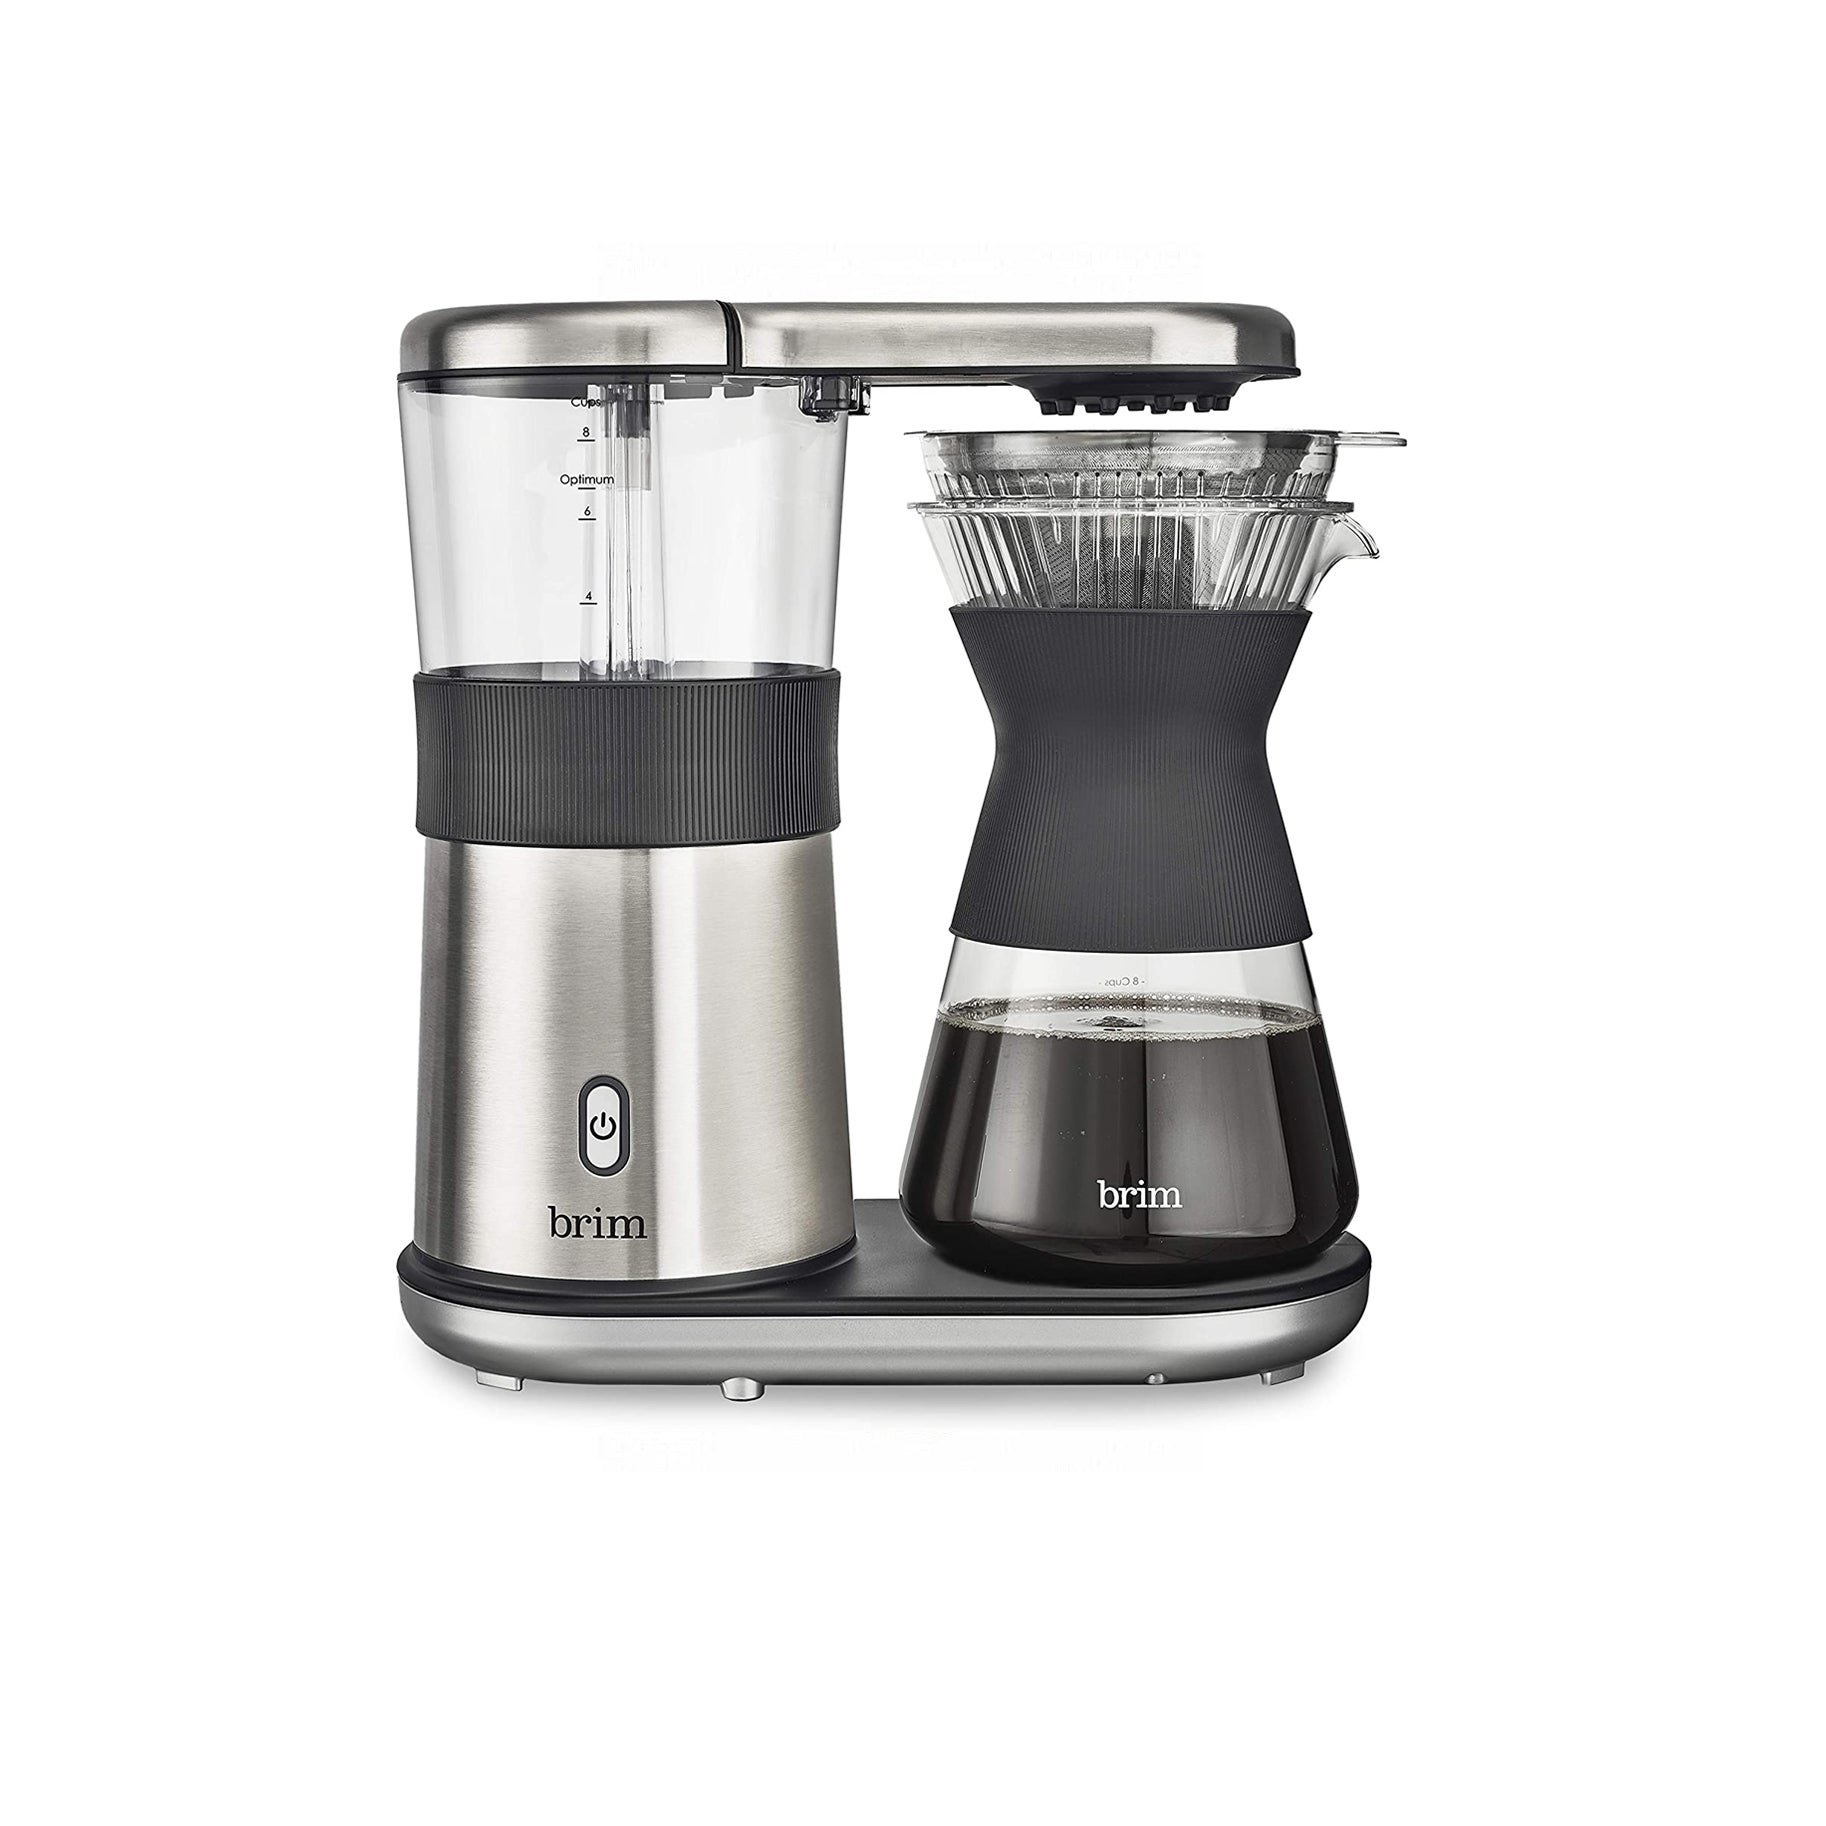 The Best Coffee Maker Option: Brim 8 Cup